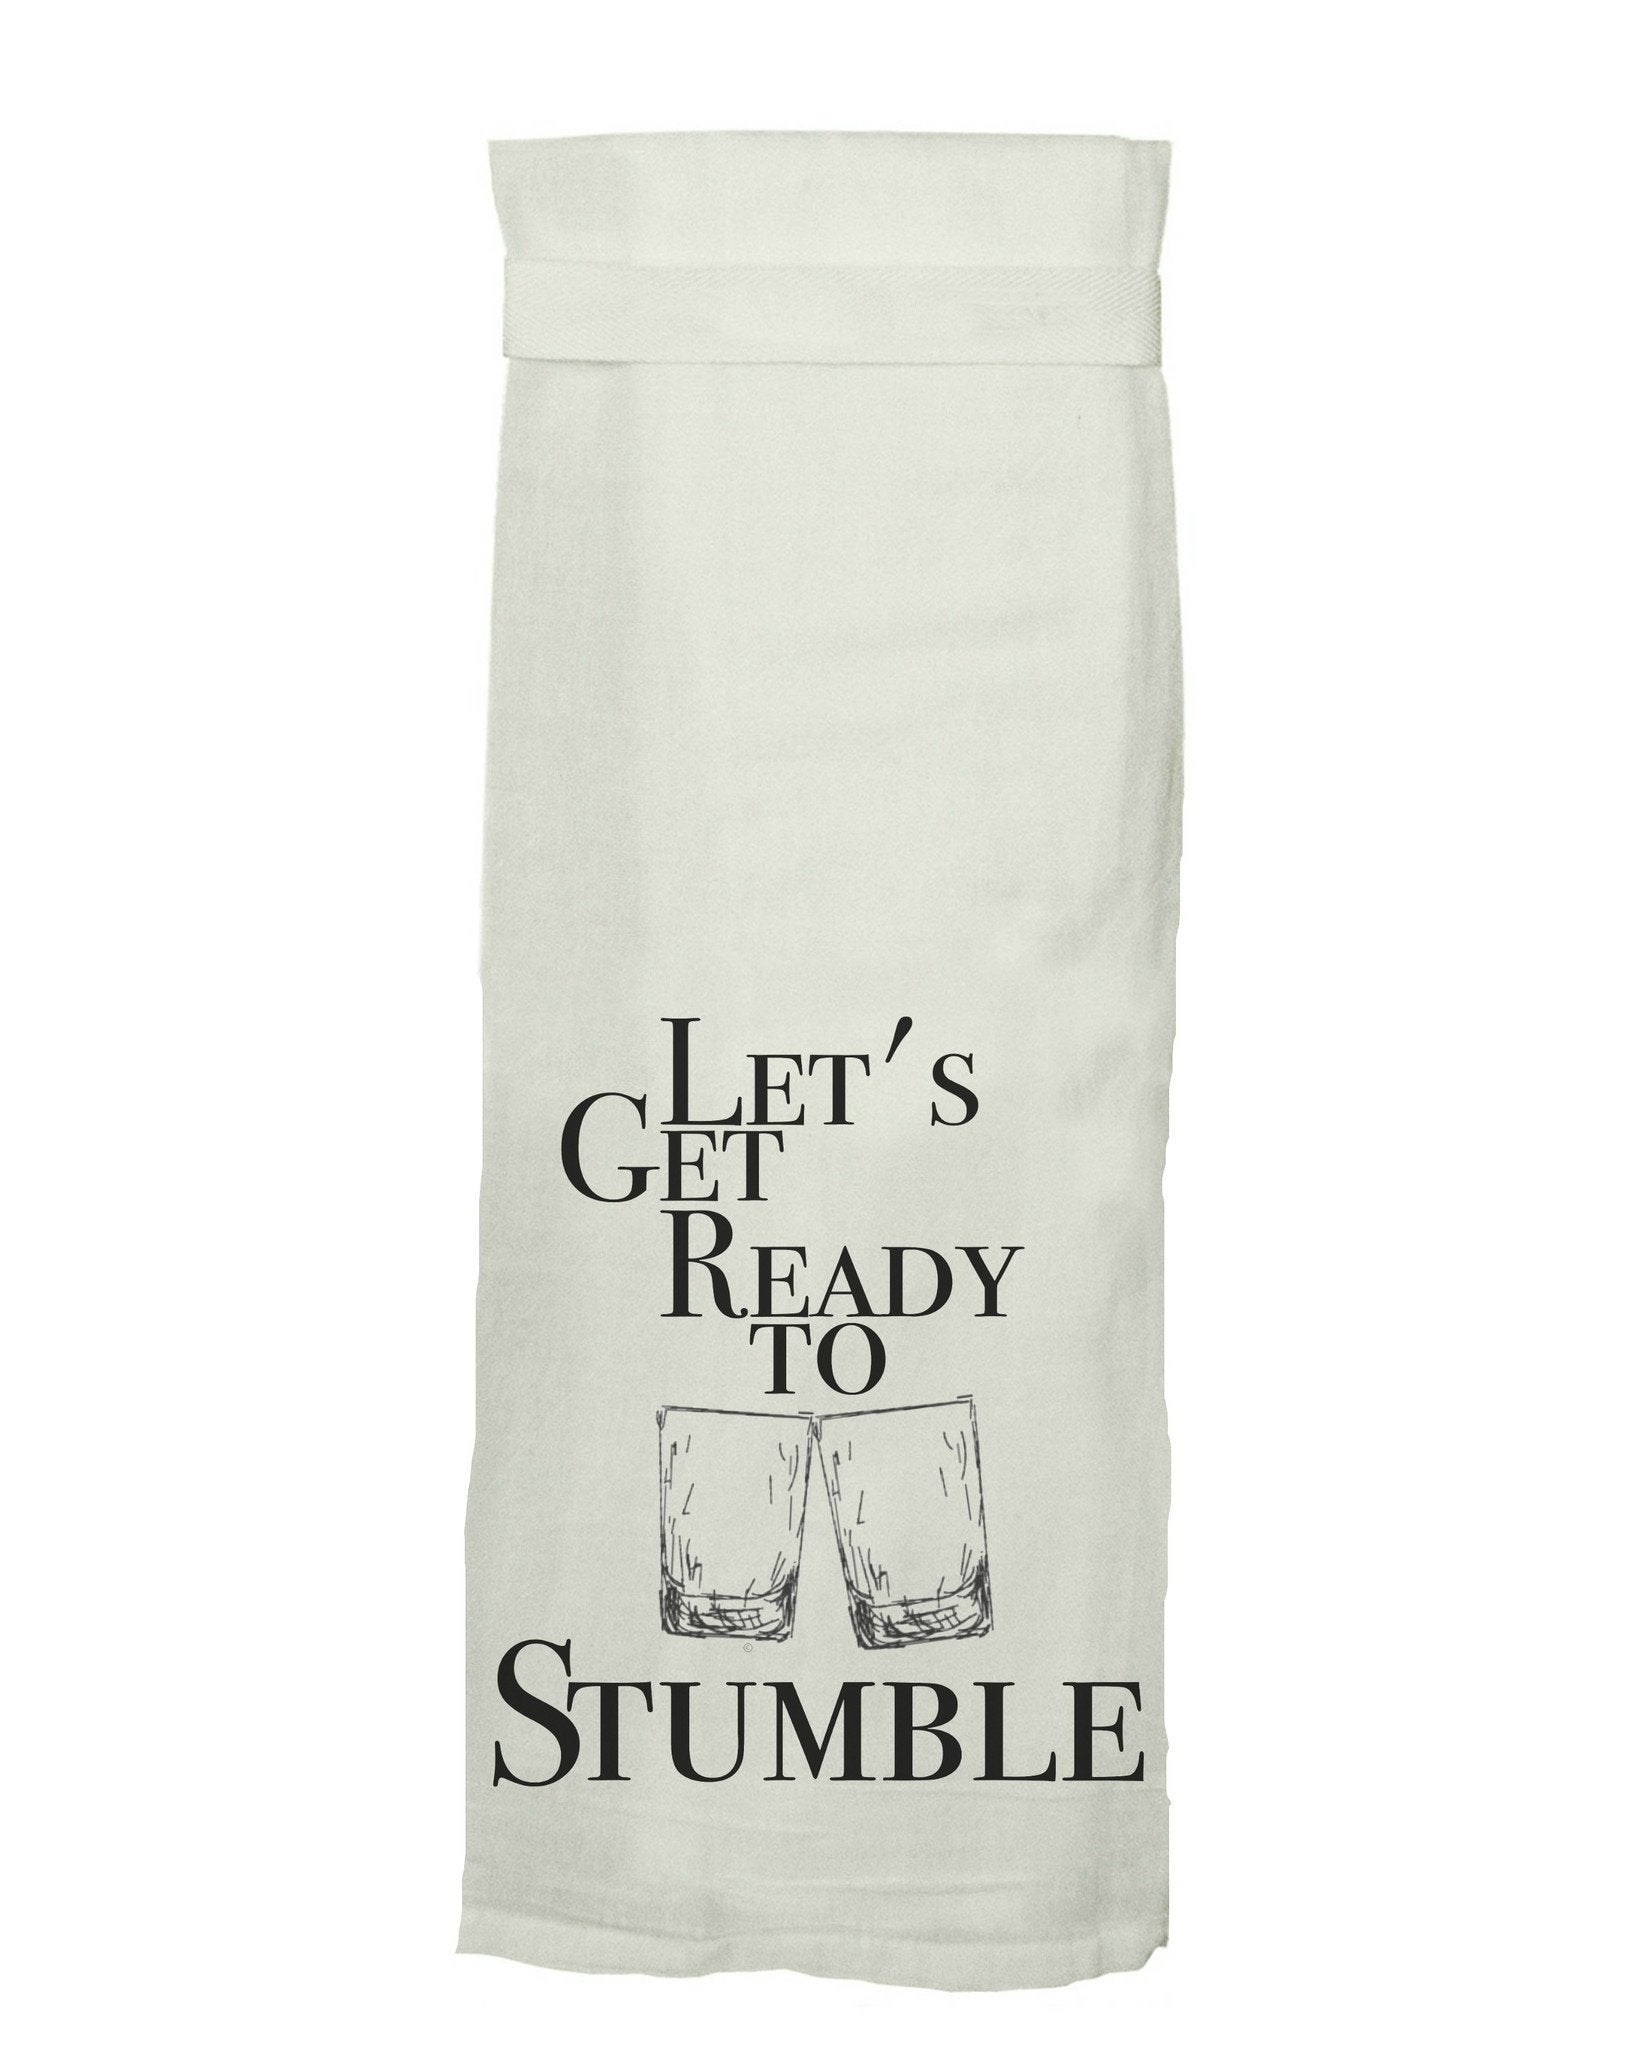 Buy Let's Get Ready To Stumble Flour Sack Tea Towel by Twisted Wares from Walking Pants Curiosities, the Most un-General Gift Store in Downtown Memphis, Tennessee!